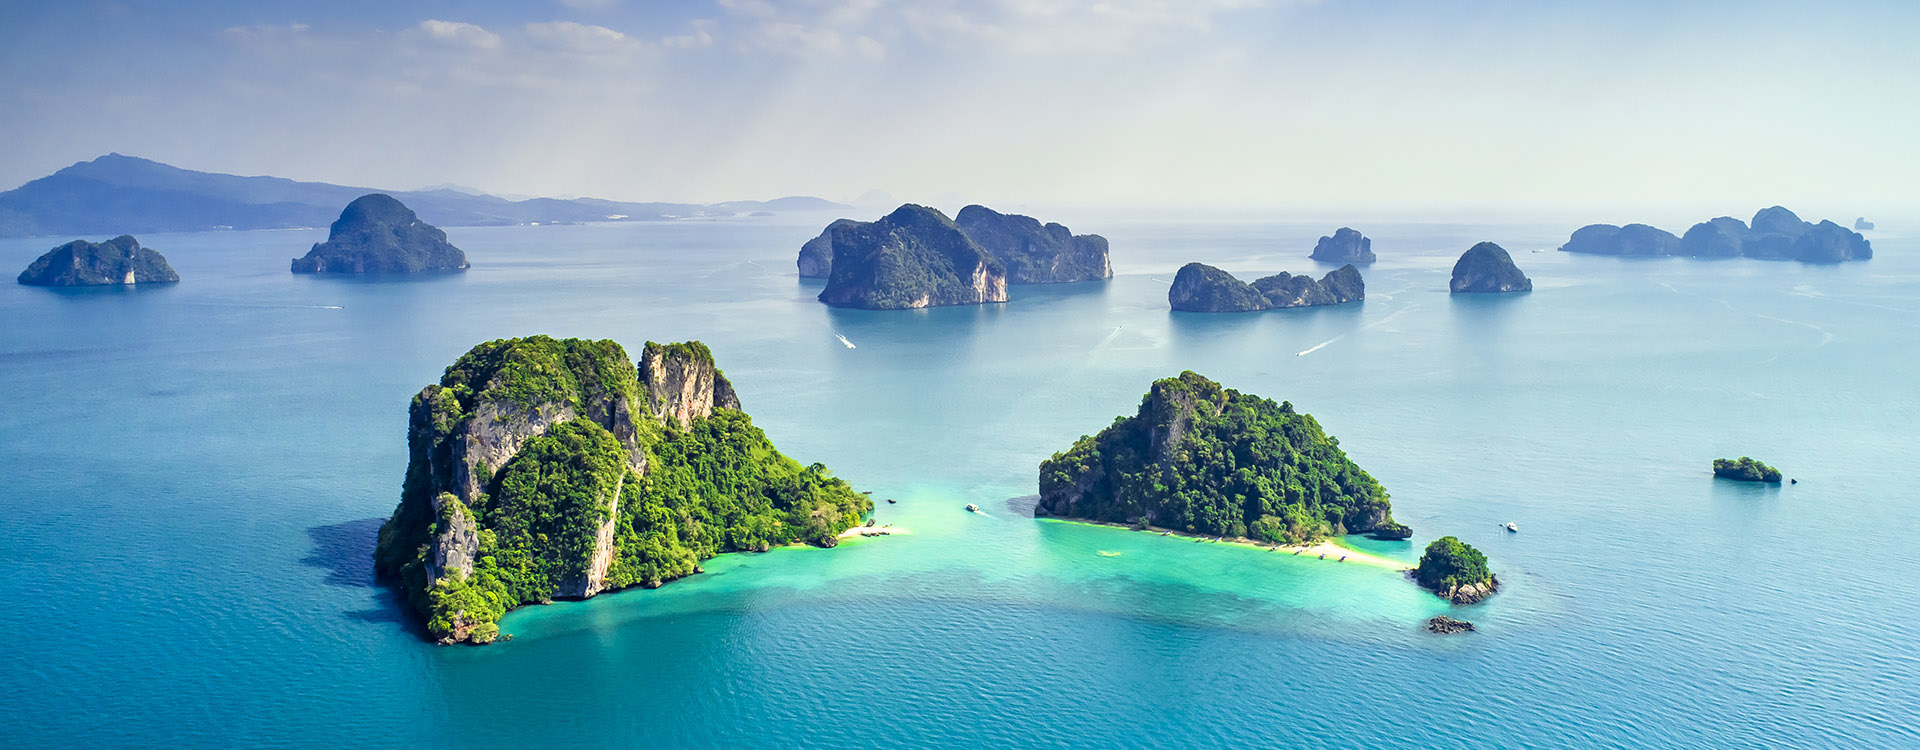 Surrounding Islands of Koh Yao Noi, Phuket, blue sky and waters with small islands